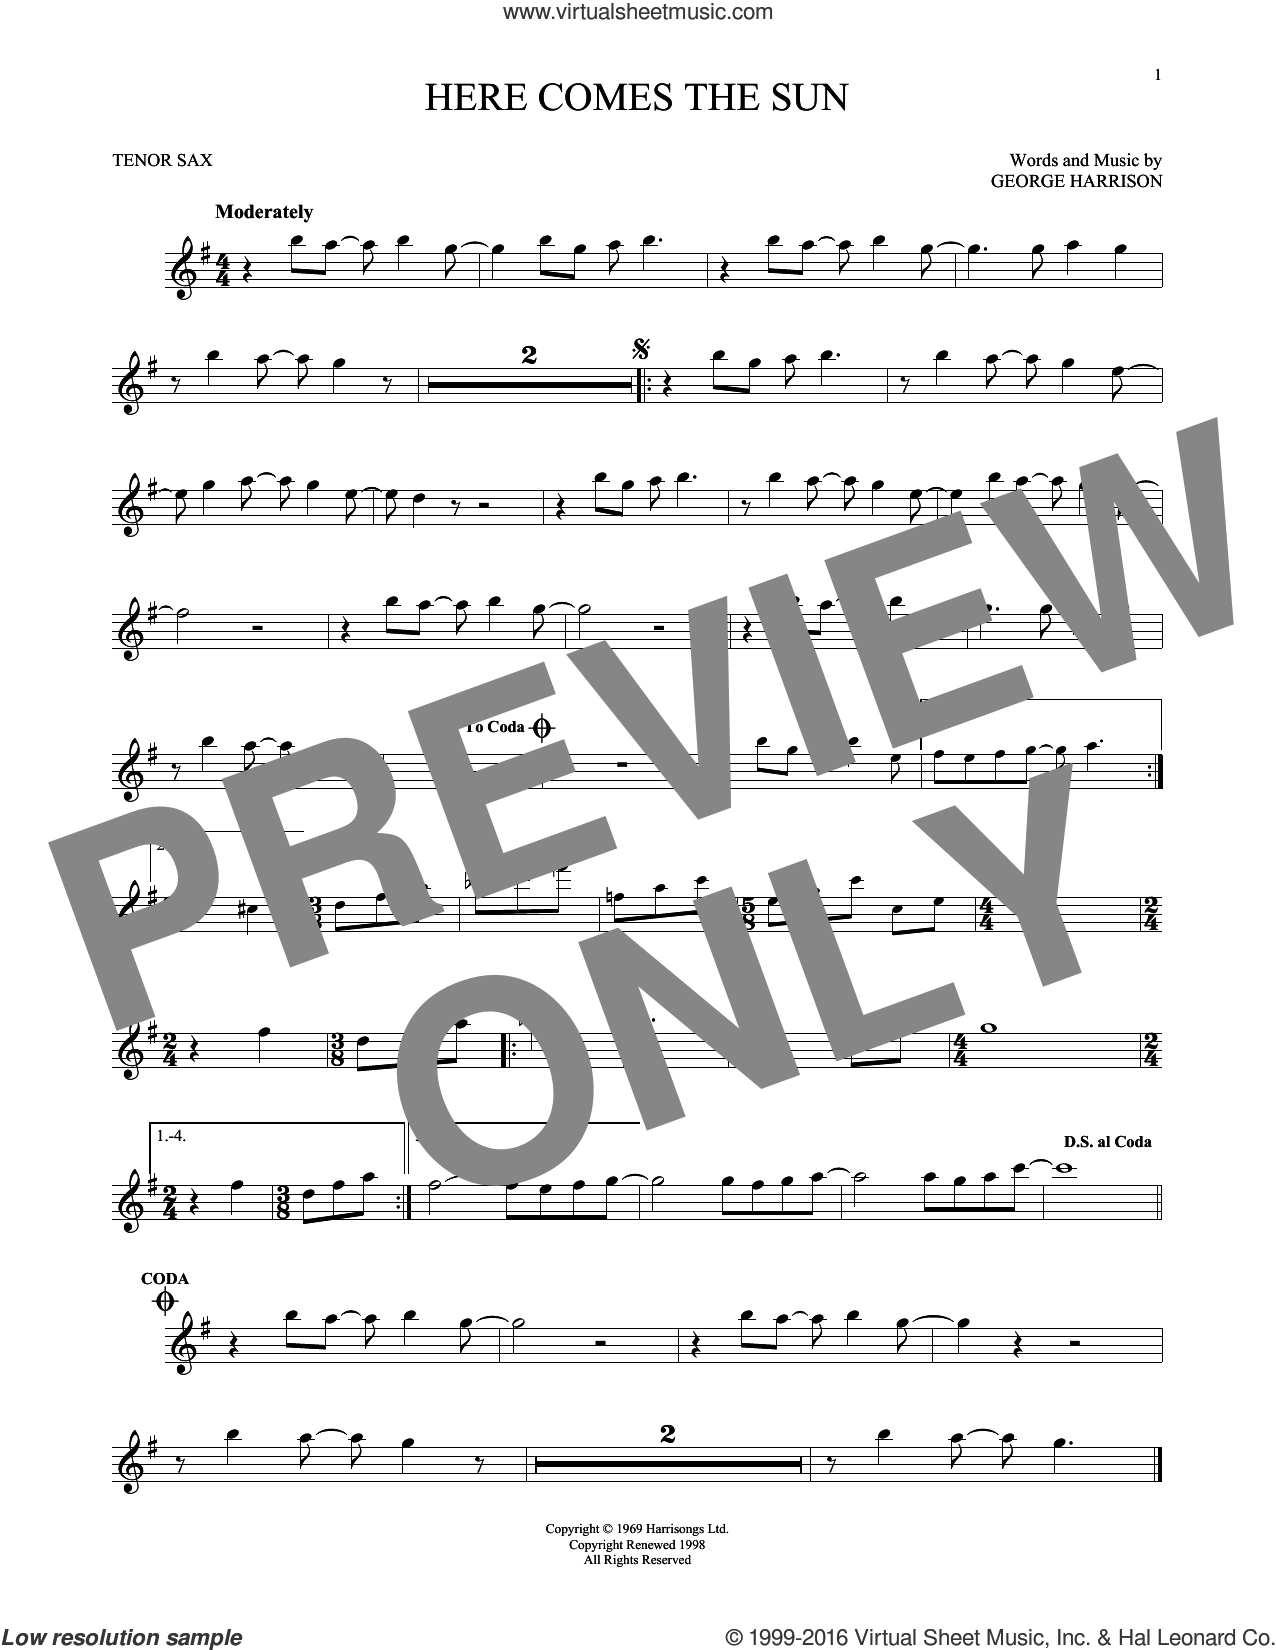 Here Comes The Sun sheet music for tenor saxophone solo by The Beatles and George Harrison, intermediate skill level